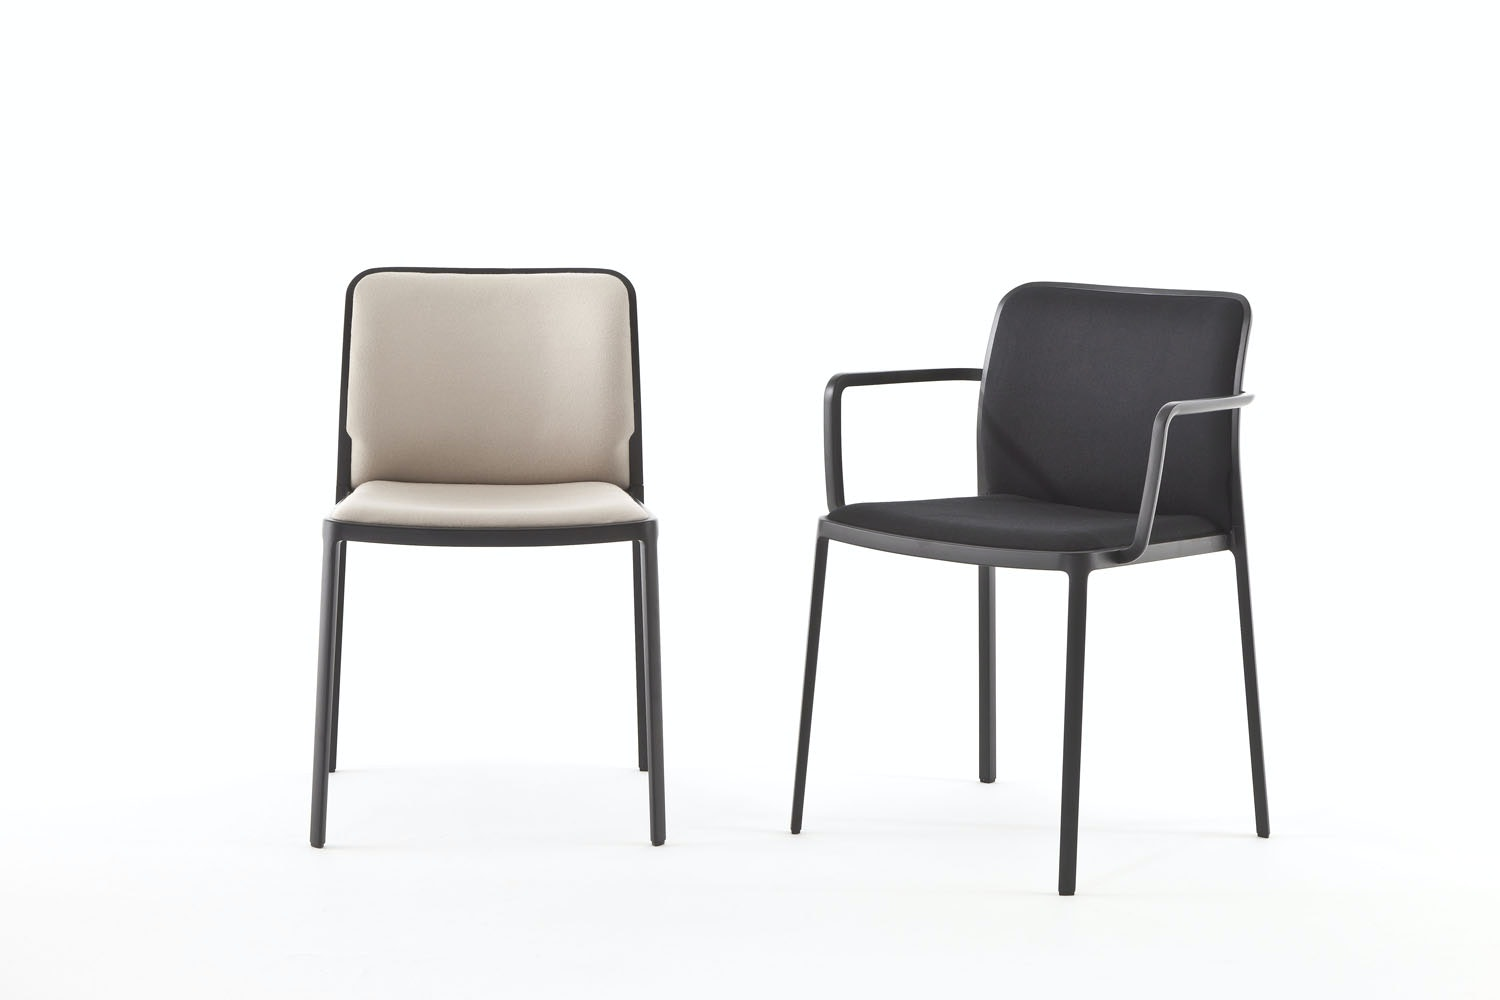 Audrey Soft Chair by Piero Lissoni for Kartell